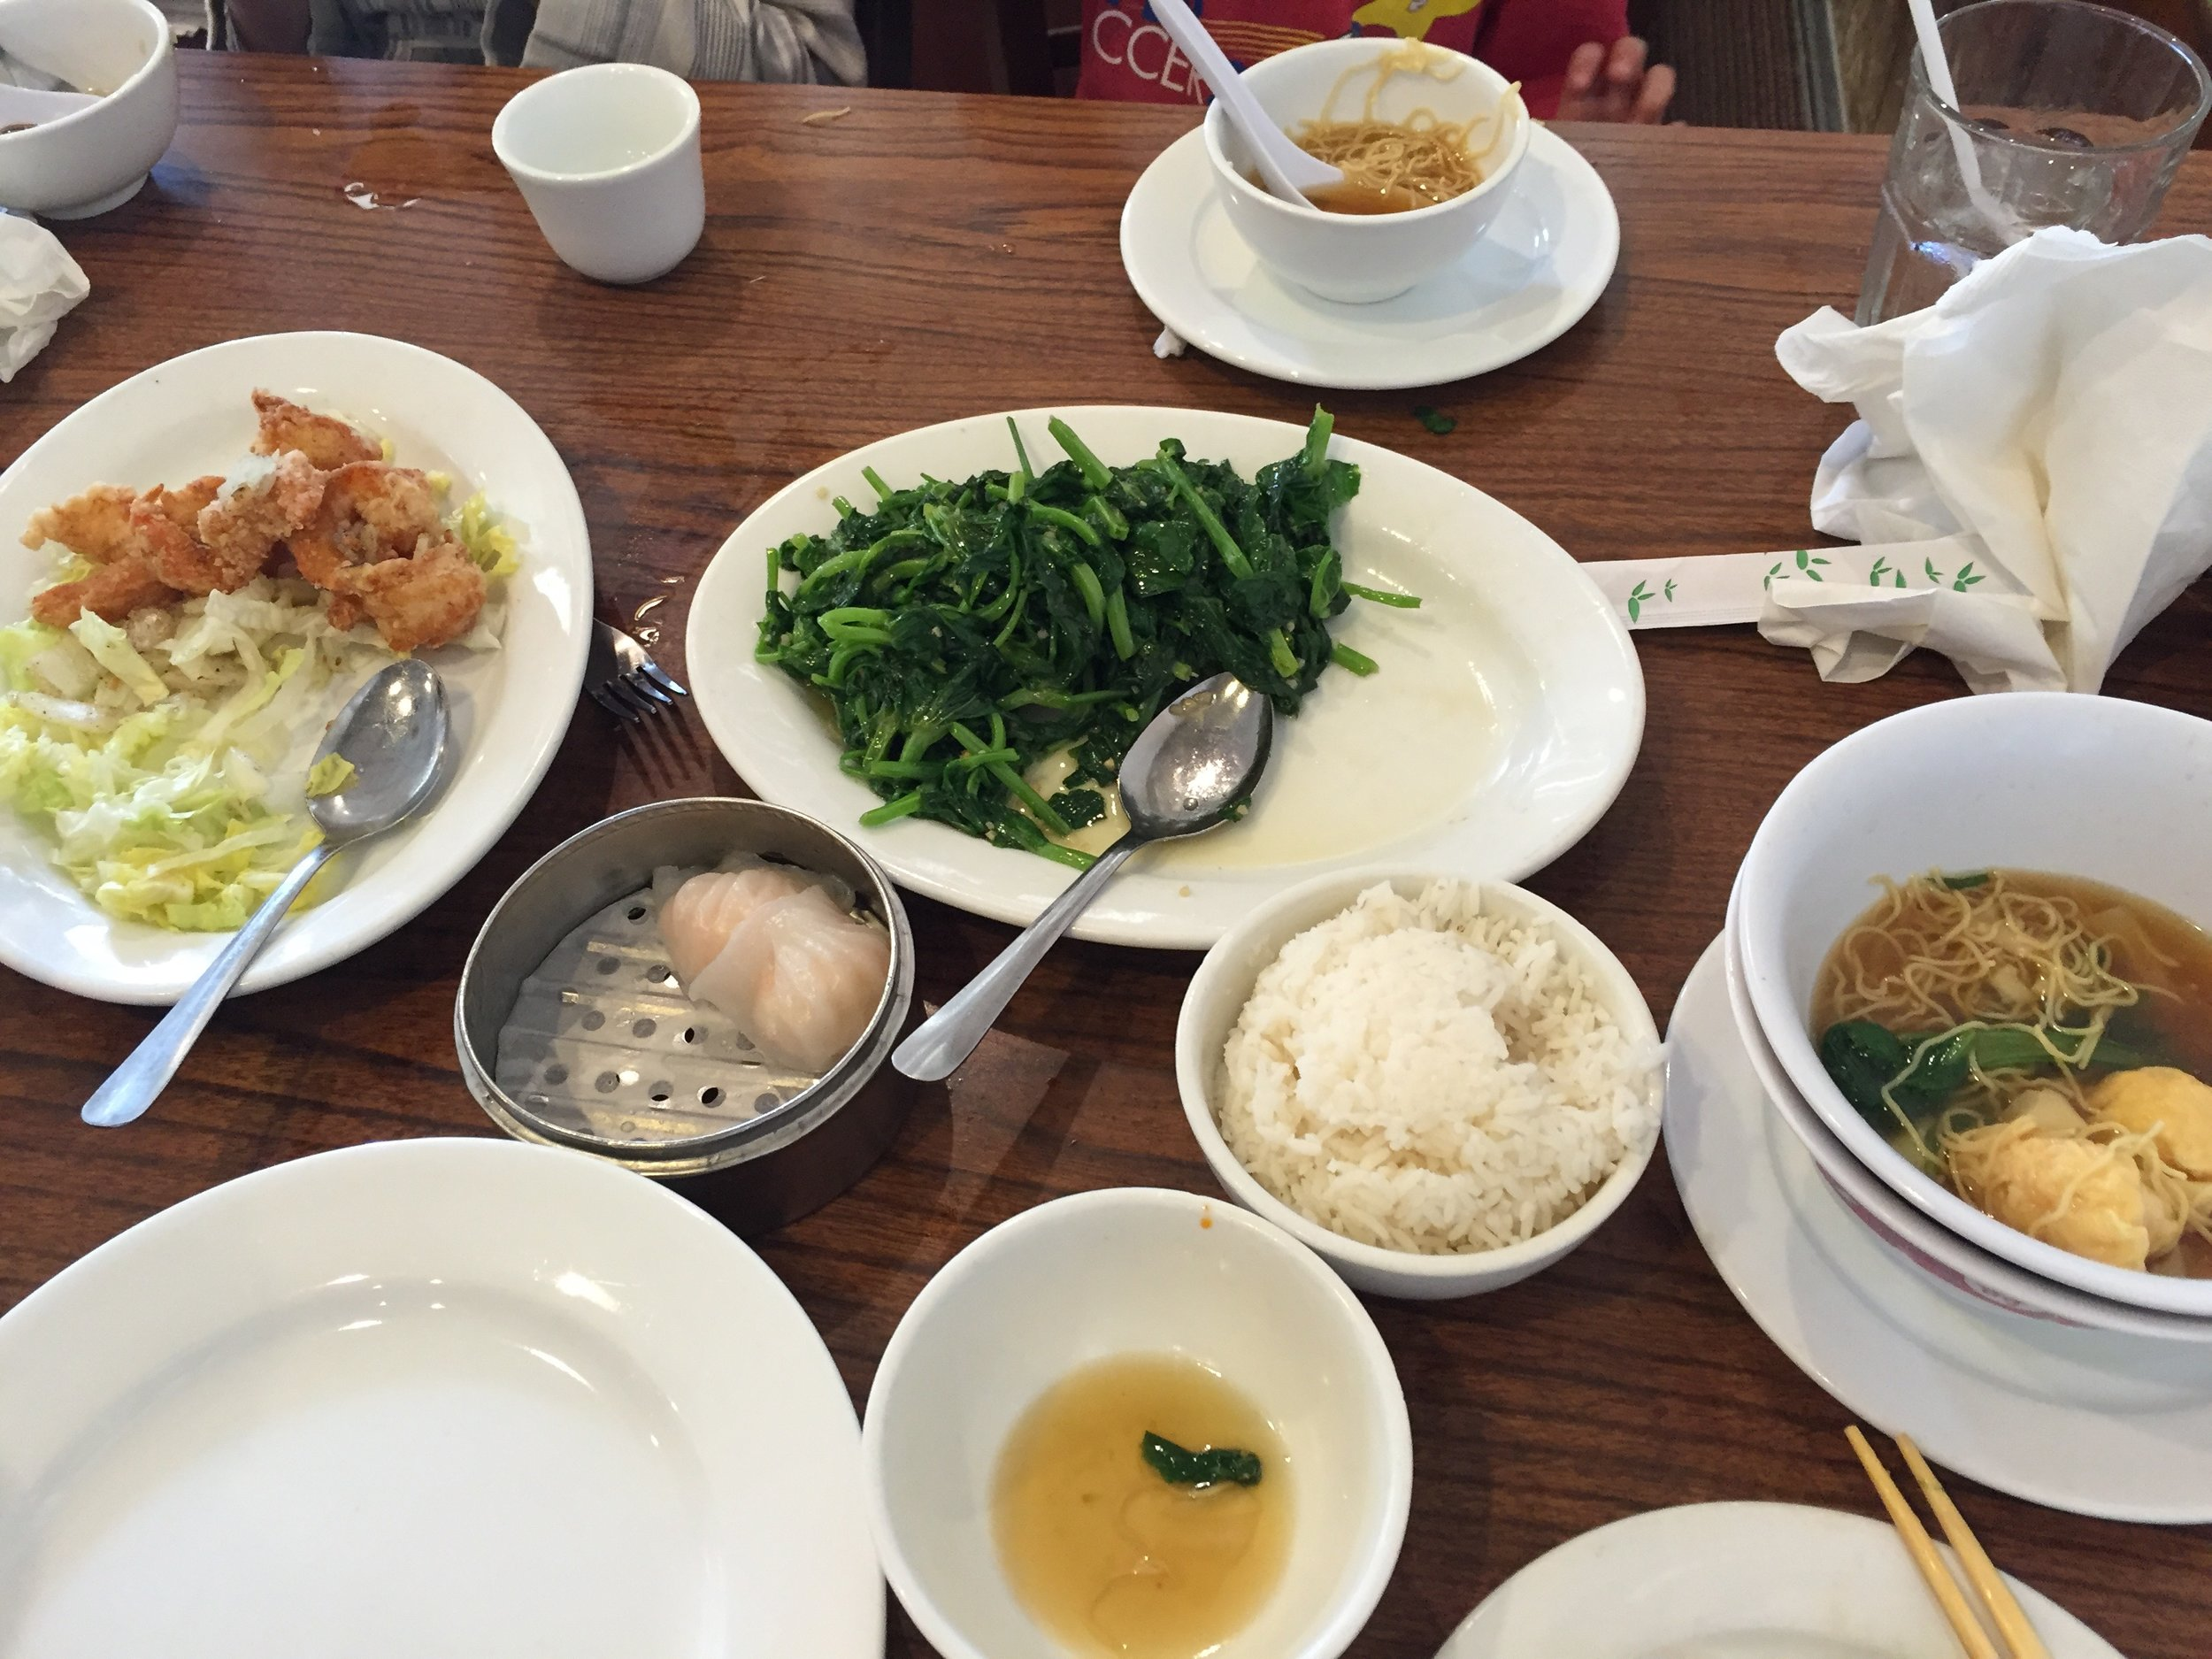 @Kohn Chau - I usually jump right in and tend to take pictures of empty plates!